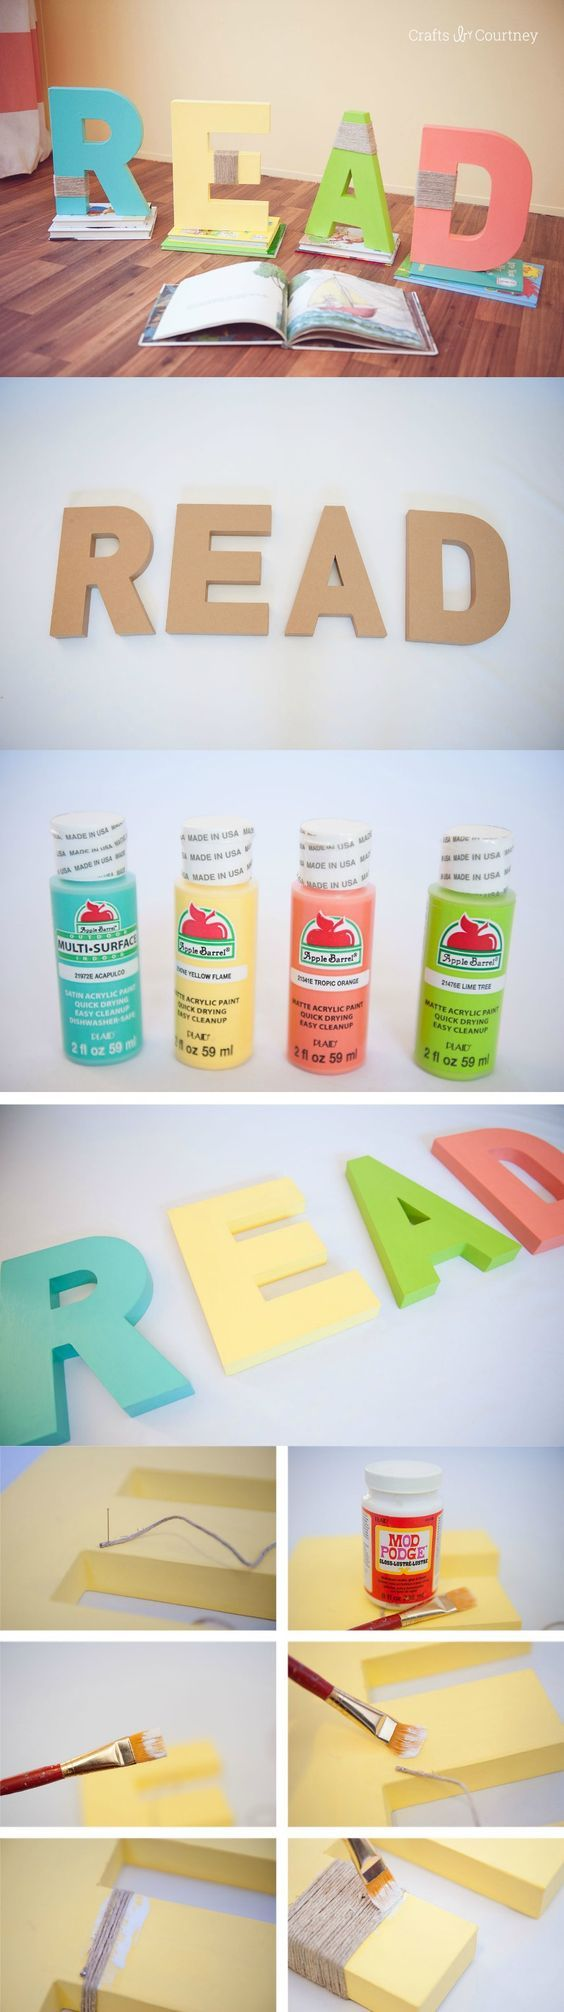 DIY READ Letters for a Book Nook - Mod Podge Rocks